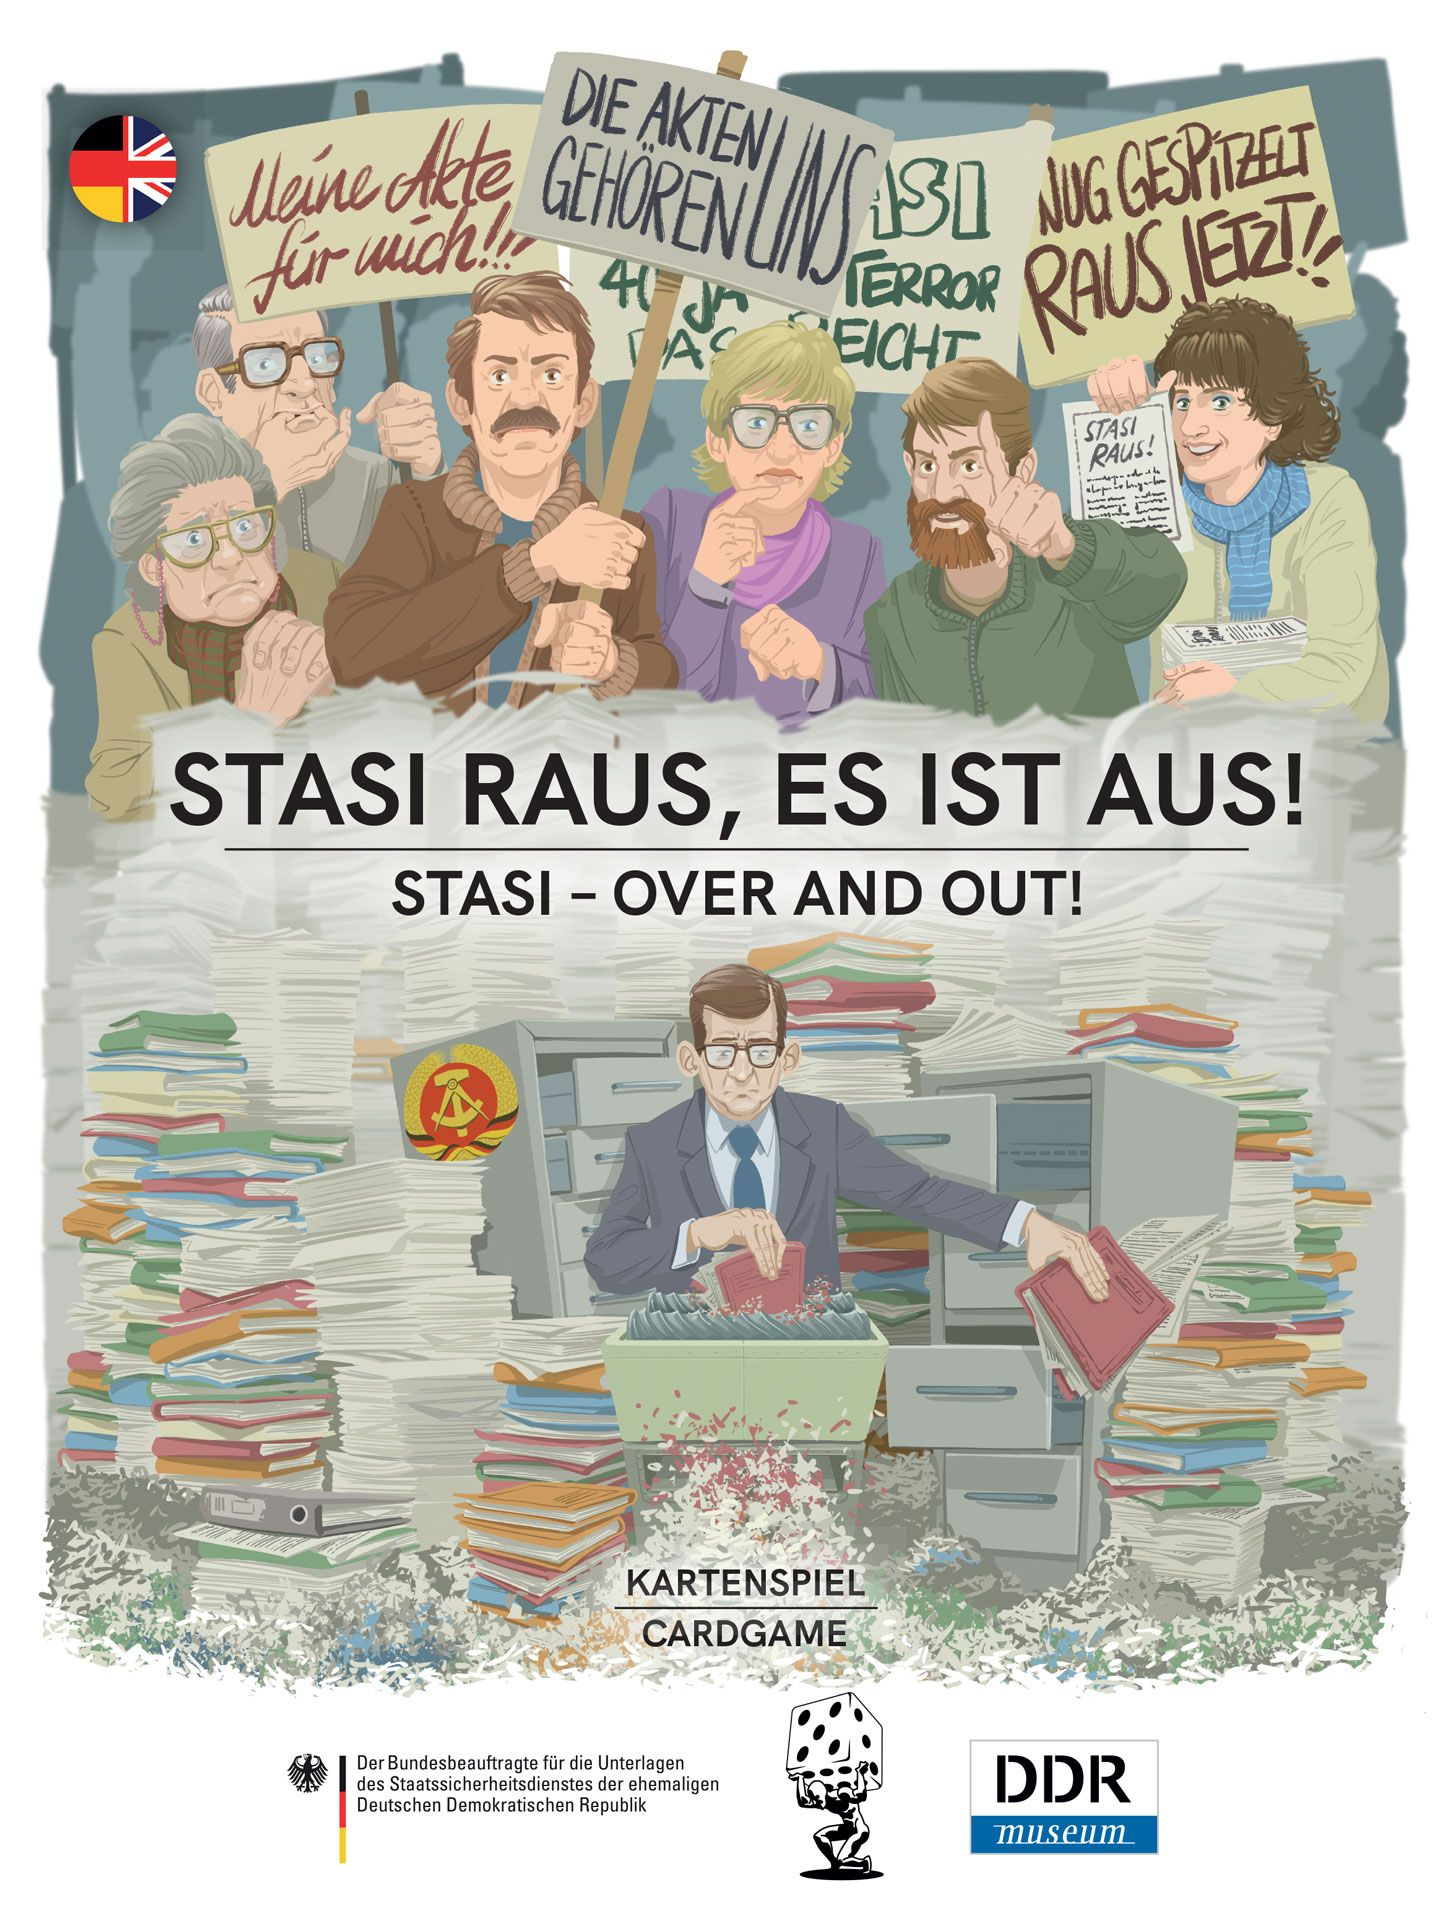 Stasi: Over and Out!